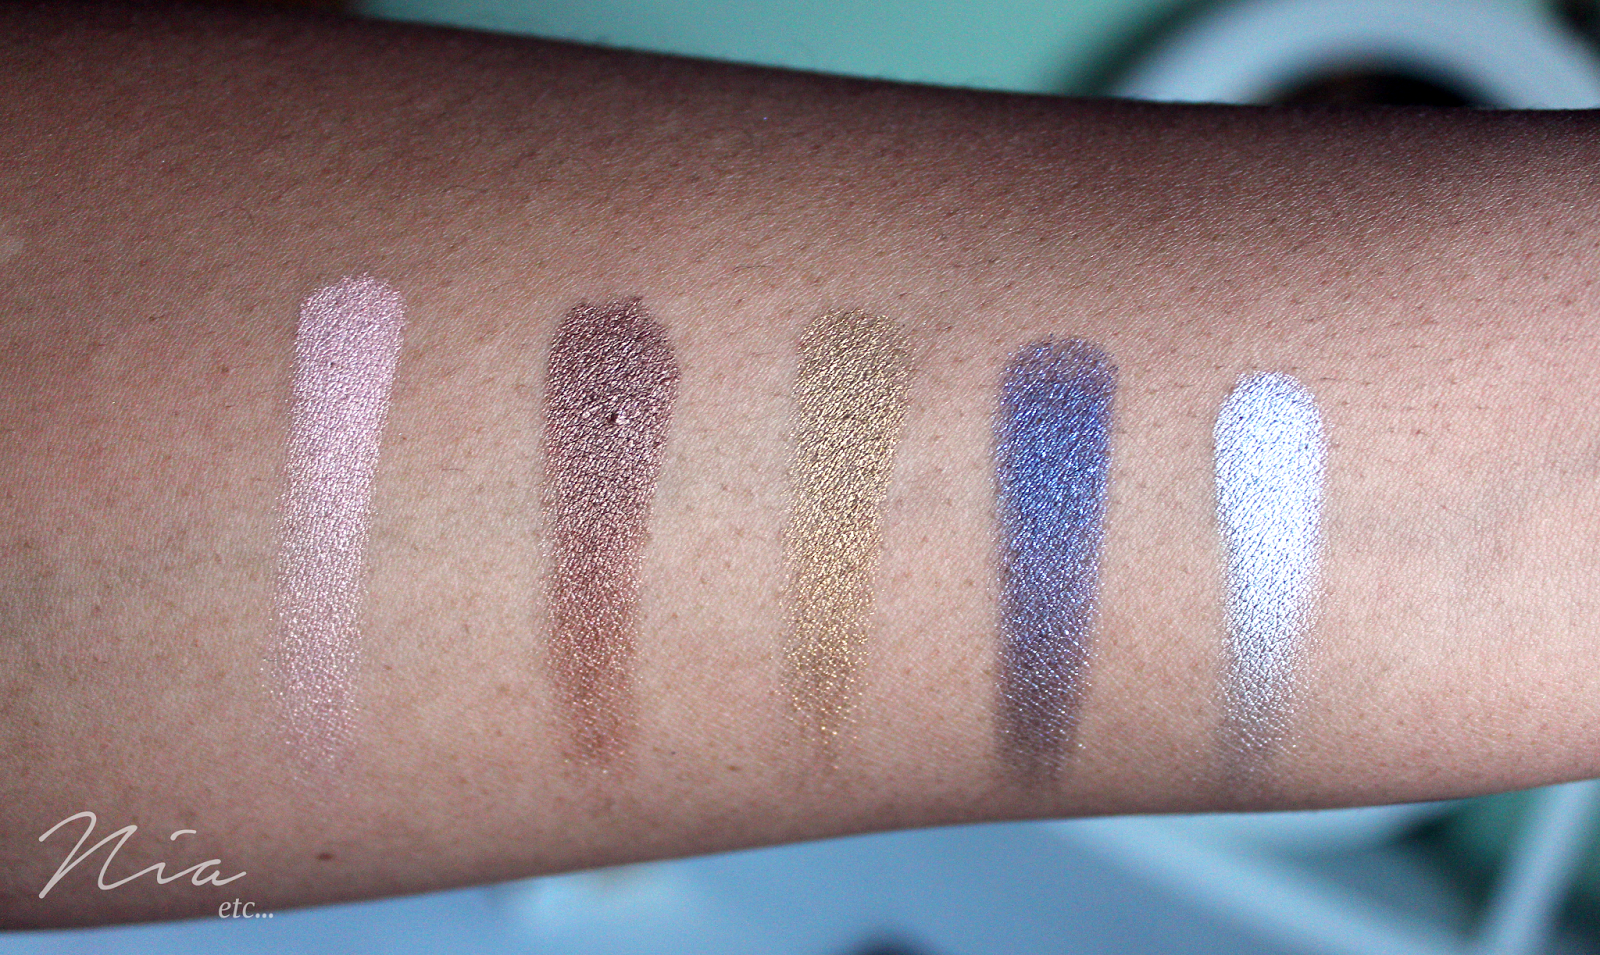 Too Faced Pretty Rebel Eyeshadow Swatches in Ringleader, Gangsta, Instigator, Badass and Jailbird